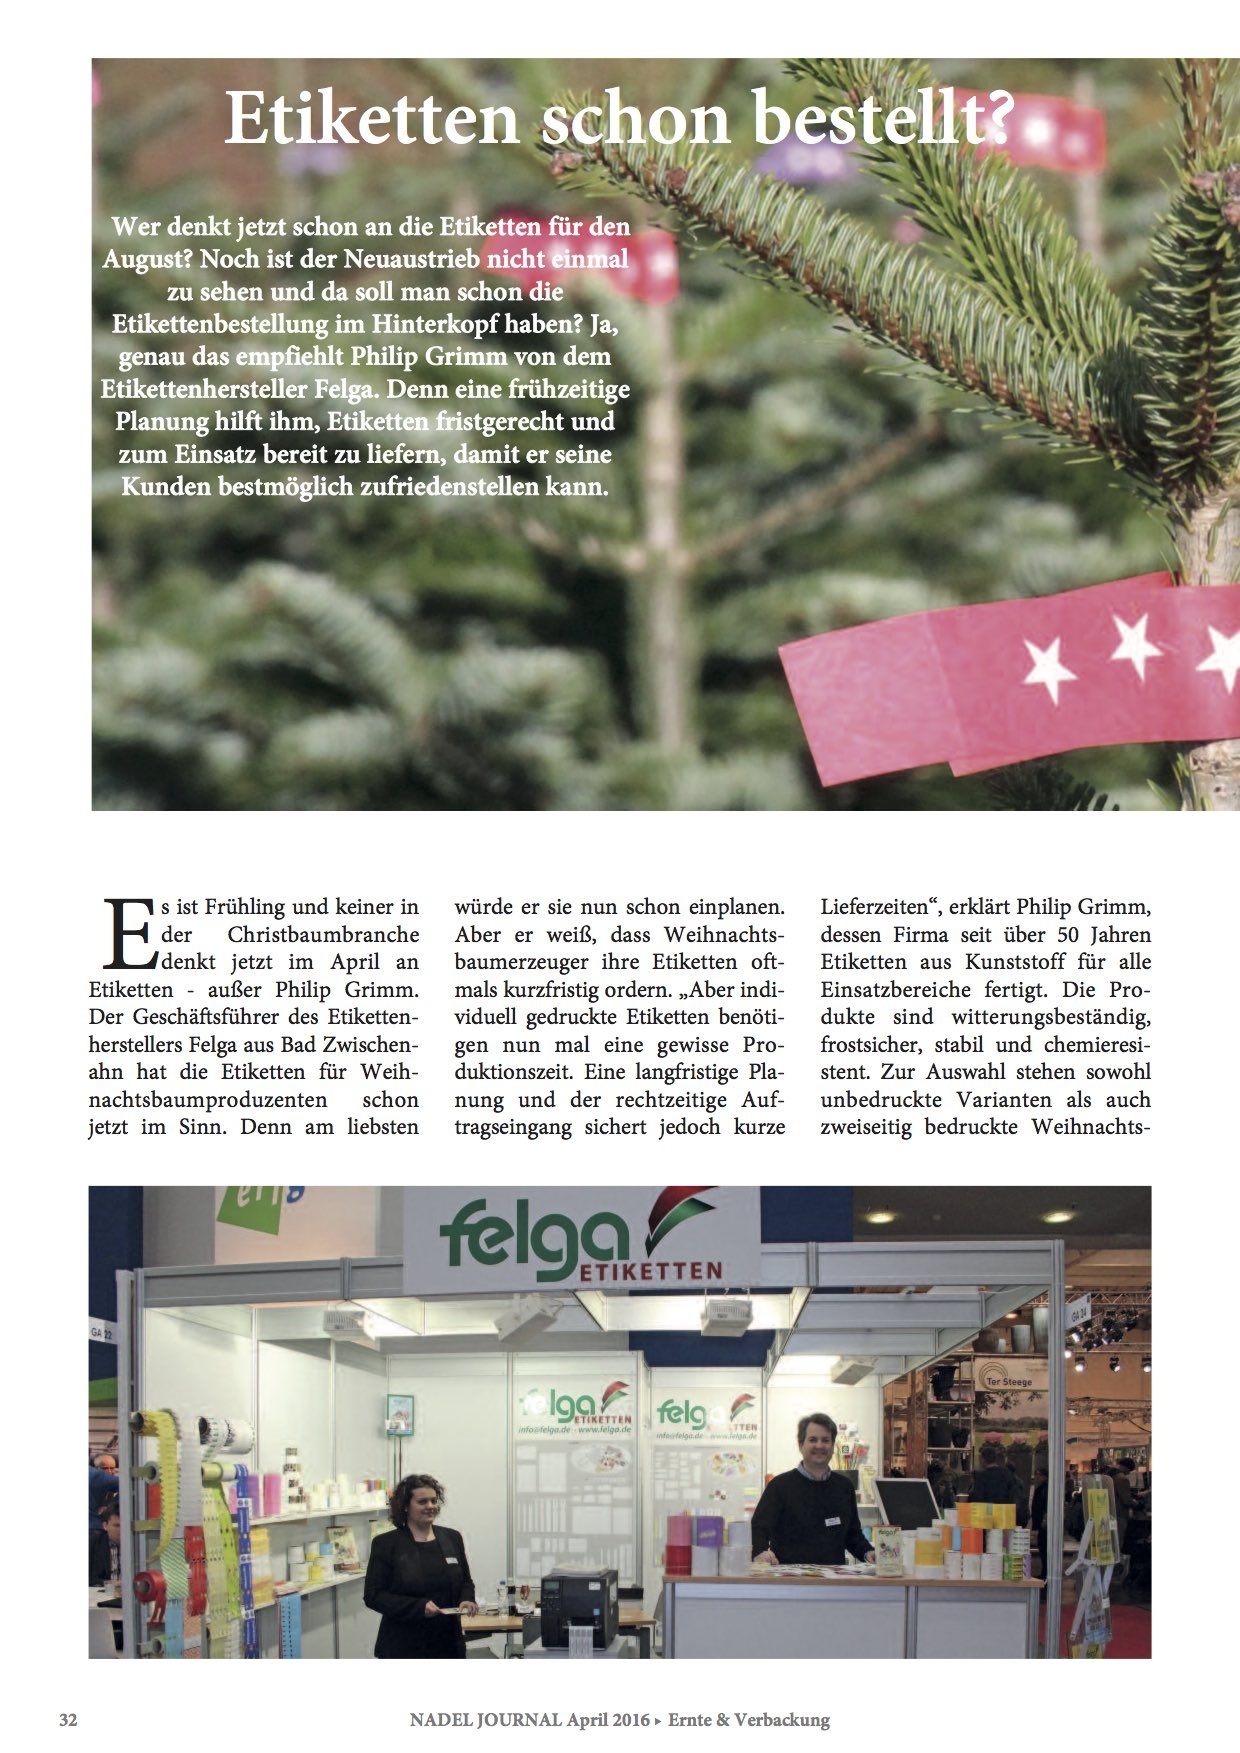 Nadel-Journal-Felga-Etiketten-2016-04-NJ-Seite-32-35